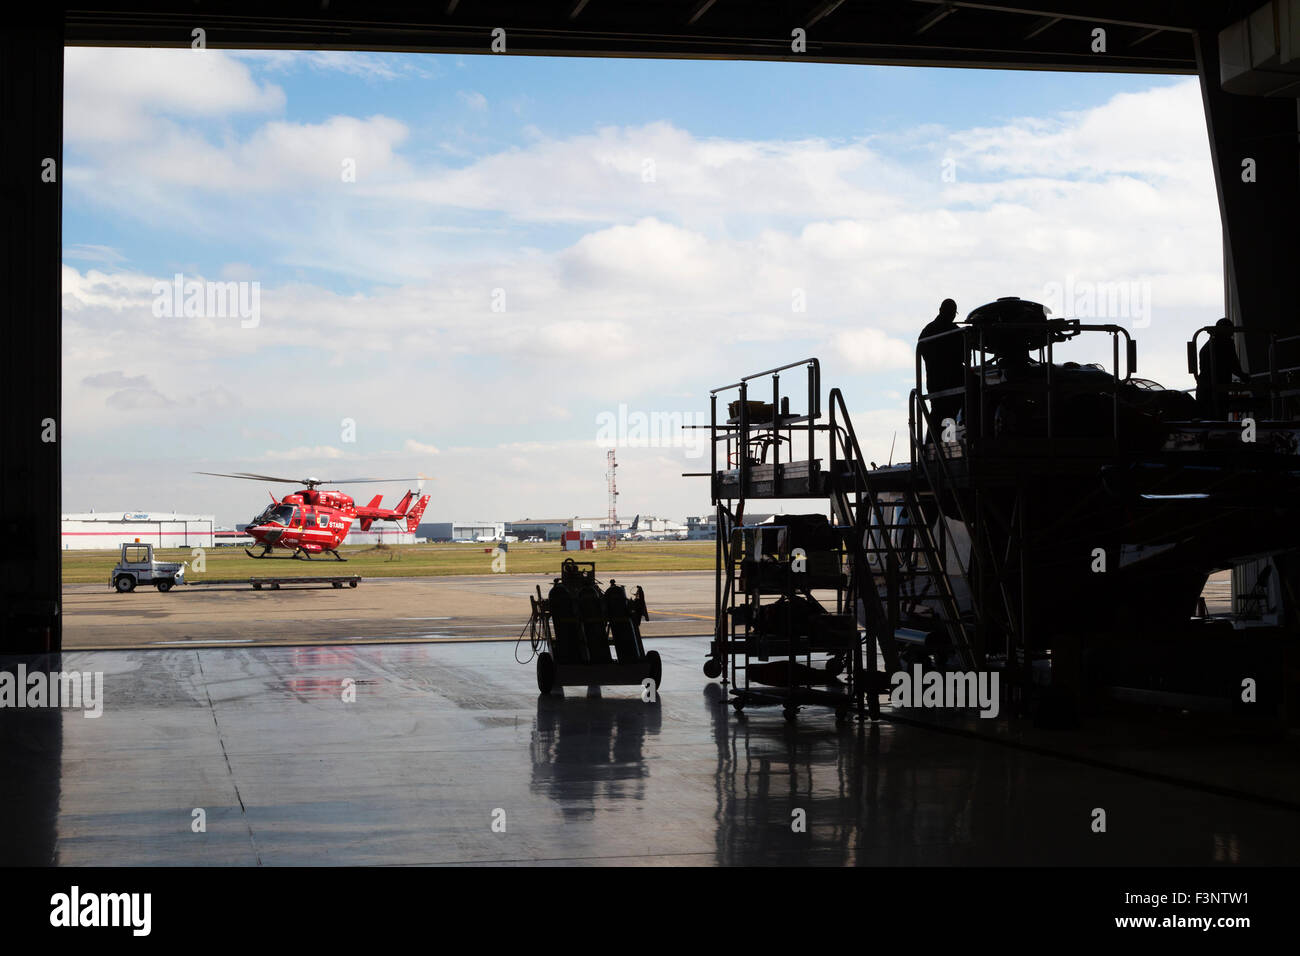 STARS air ambulance helicopter taking off from hangar to respond to call from Children's Hospital - Stock Image